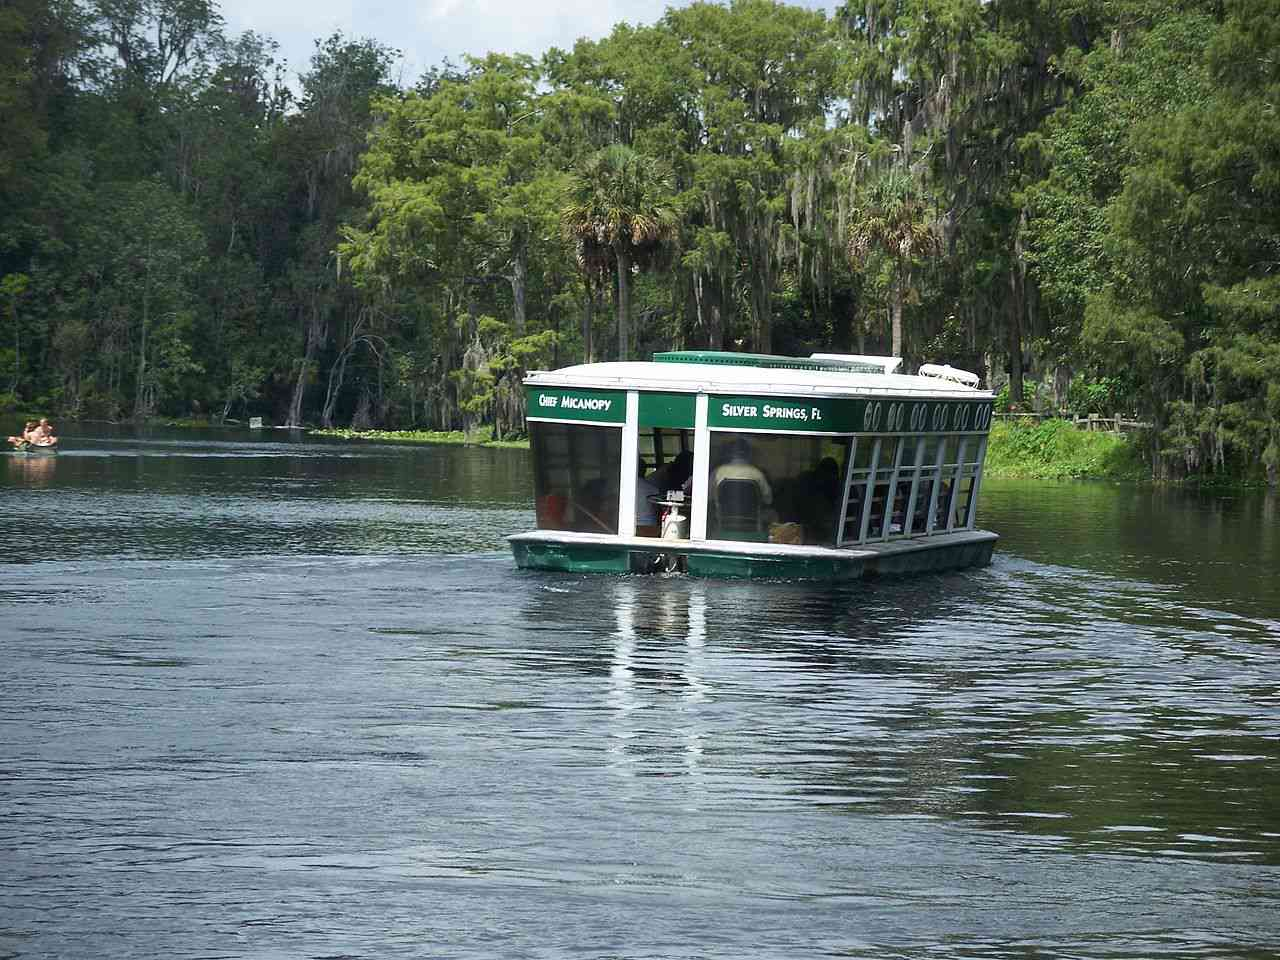 Silver Springs Nature Theme Park: One of the glass-bottom boats